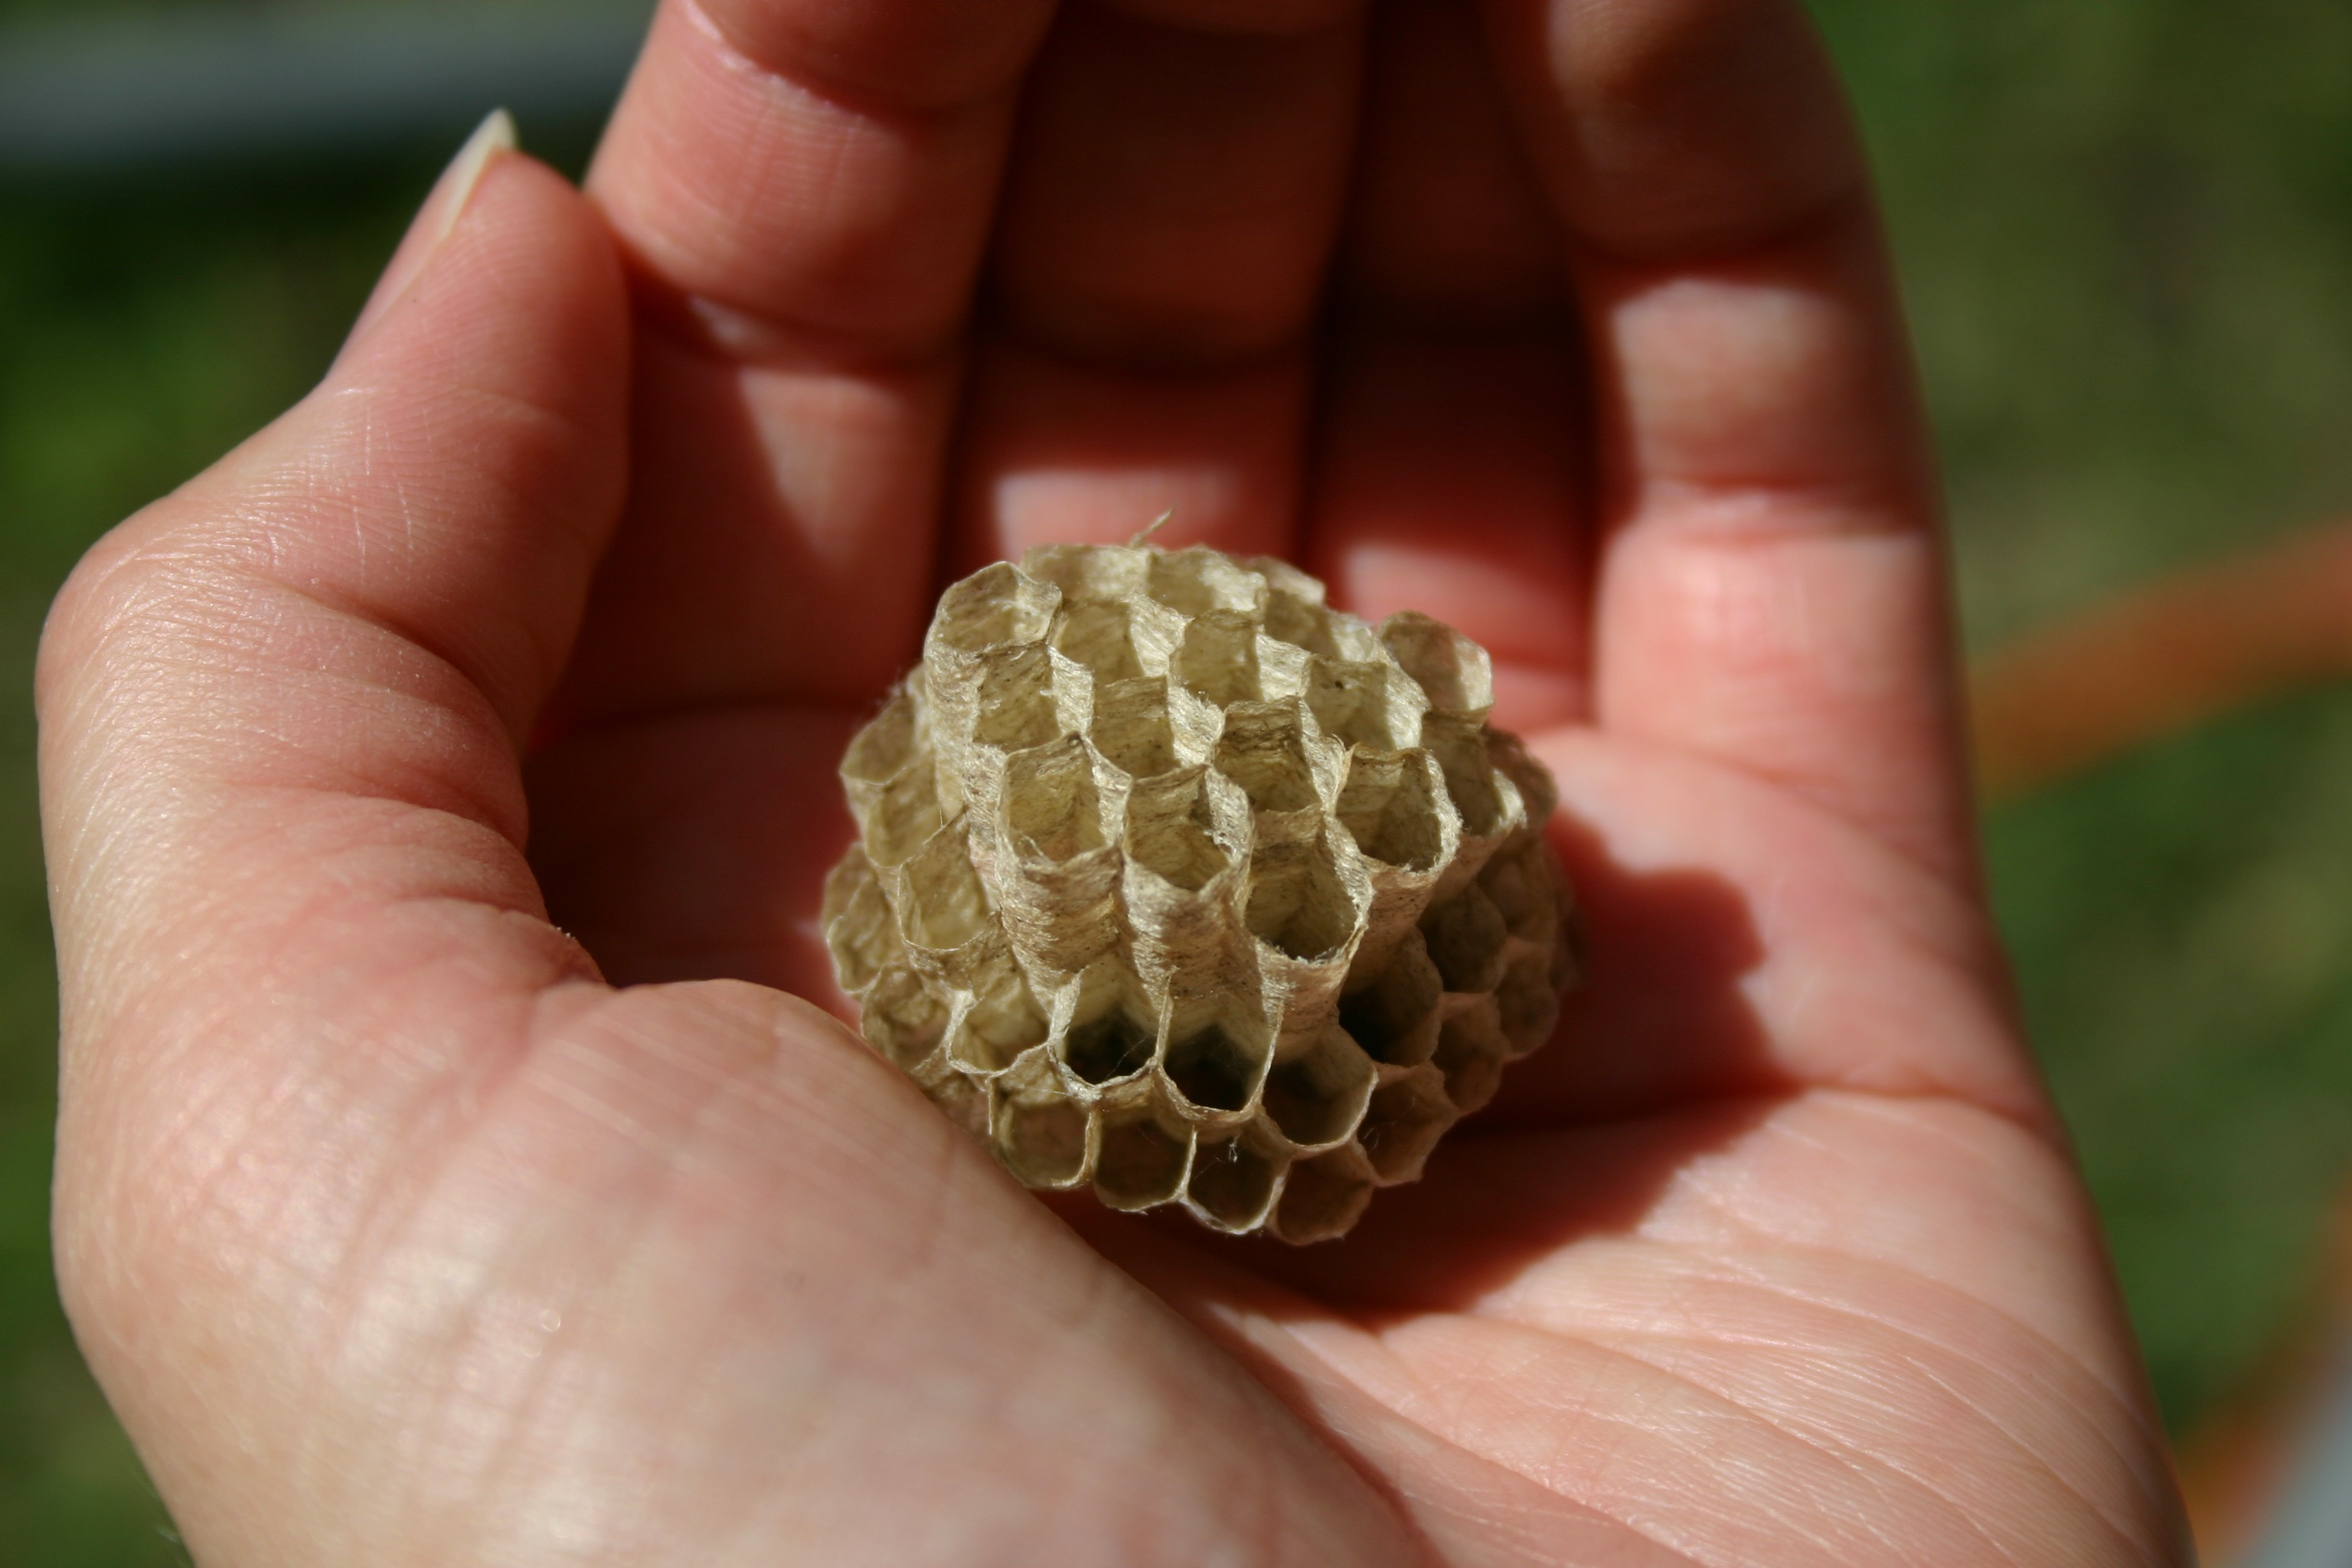 A vacant paper wasp nest held in the palm of my hand. The nest is constructed of open hexagonal cells in which the young develop.